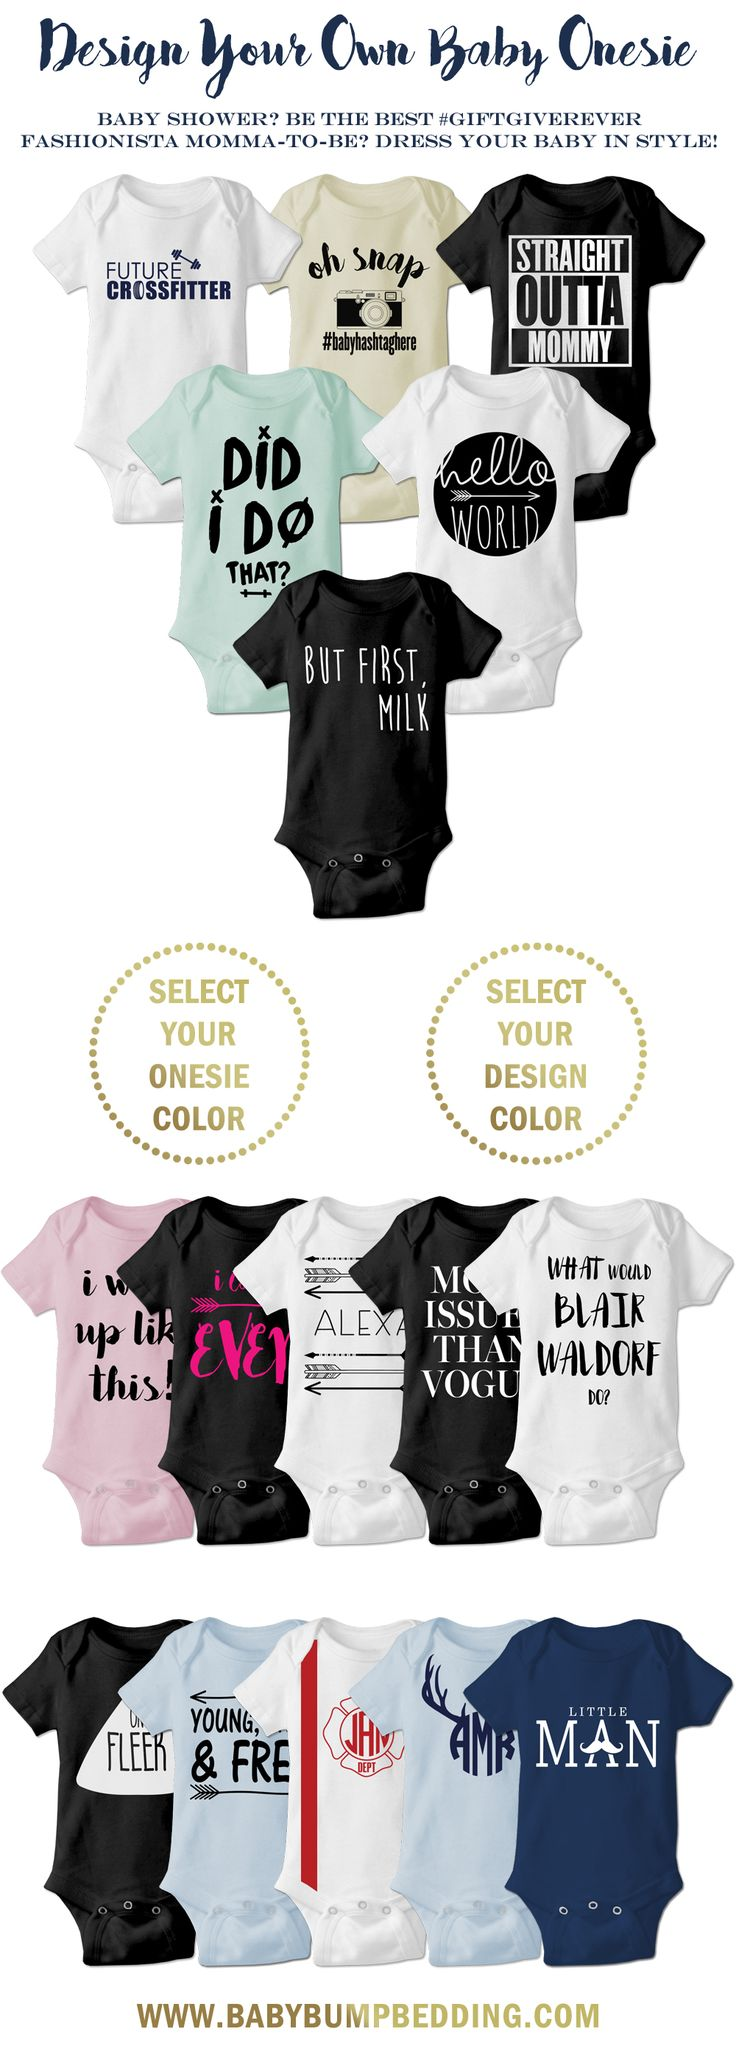 Are you a fashionista momma-to-be? Dress your baby in style with these adorable onesies. Looking for the perfect baby shower gift? These custom onesies make the best baby shower gift ever!! Customize a cute and trendy onesie by selecting your favorite vinyl color and onesie color.